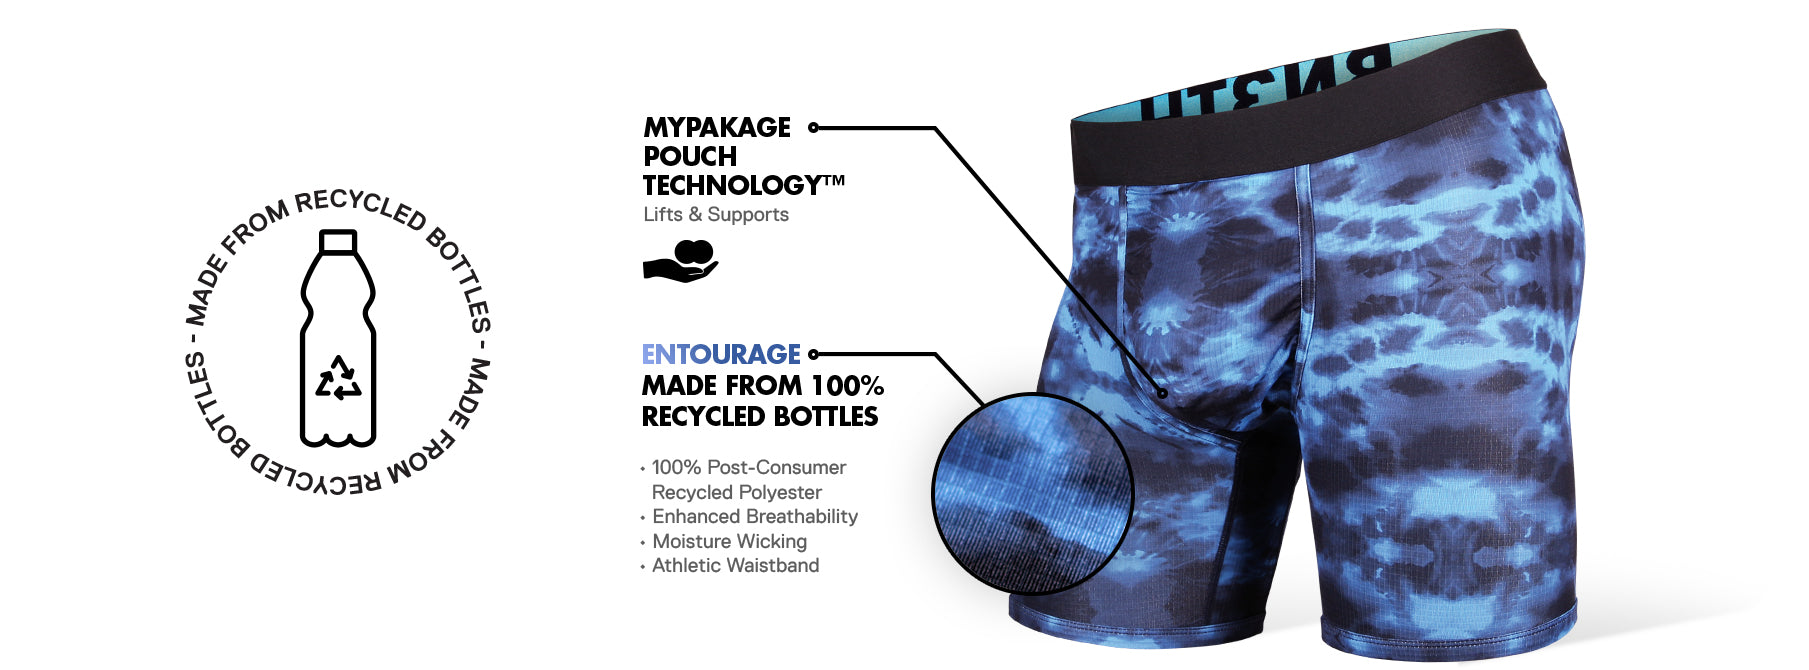 Breathable undershort made from recycled plastic bottles - the Entourage performance underwear series